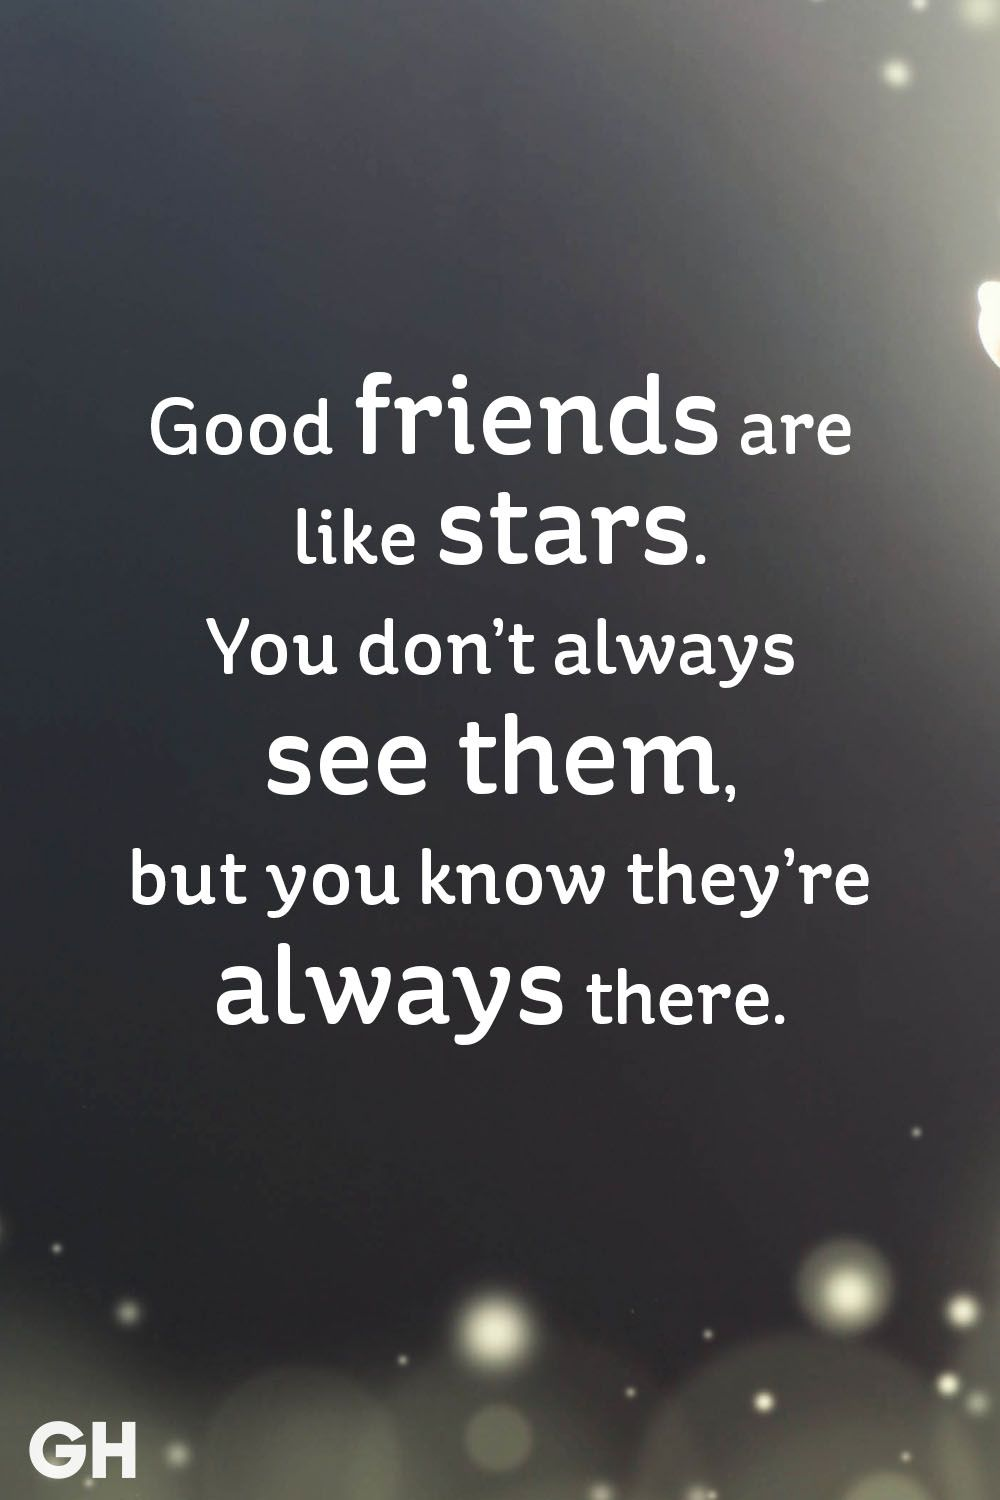 Best Friend Quotes 25 Short Friendship Quotes for Best Friends   Cute Sayings About  Best Friend Quotes